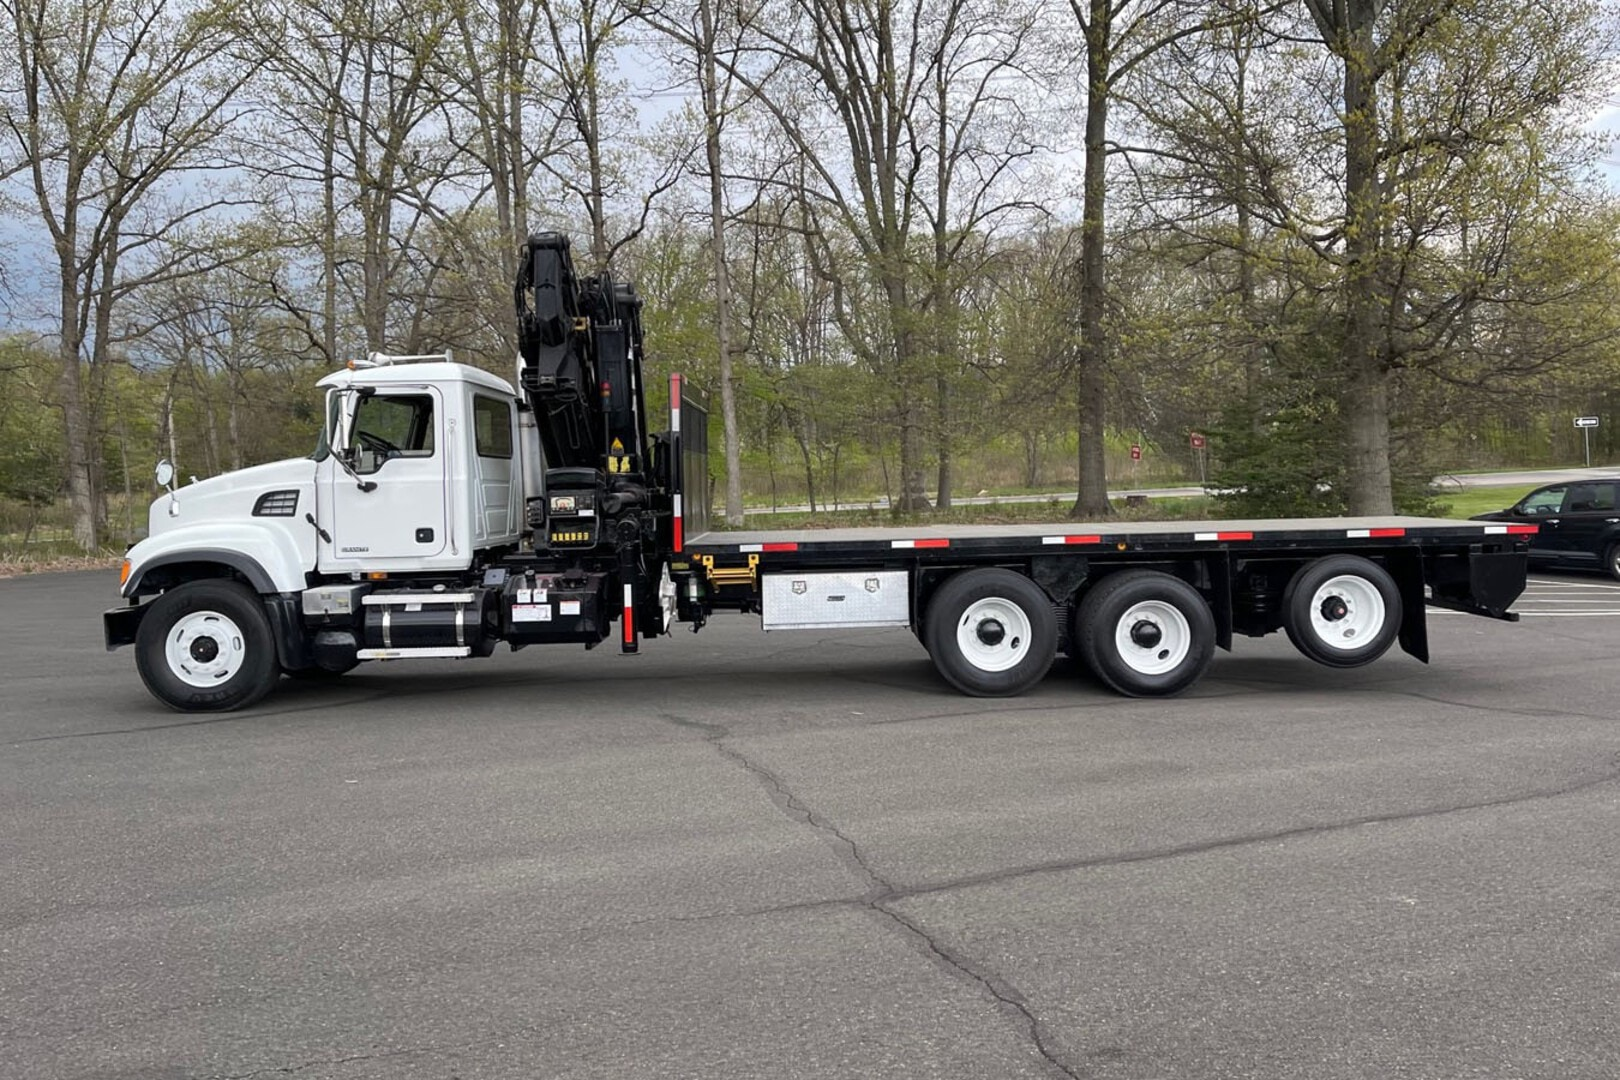 Used, 2005, Other, MACK CV713 W/ 2005 HIAB 288E-4 HIPRO: 11 TON KNUCKLEBOOM TRUCK, Other